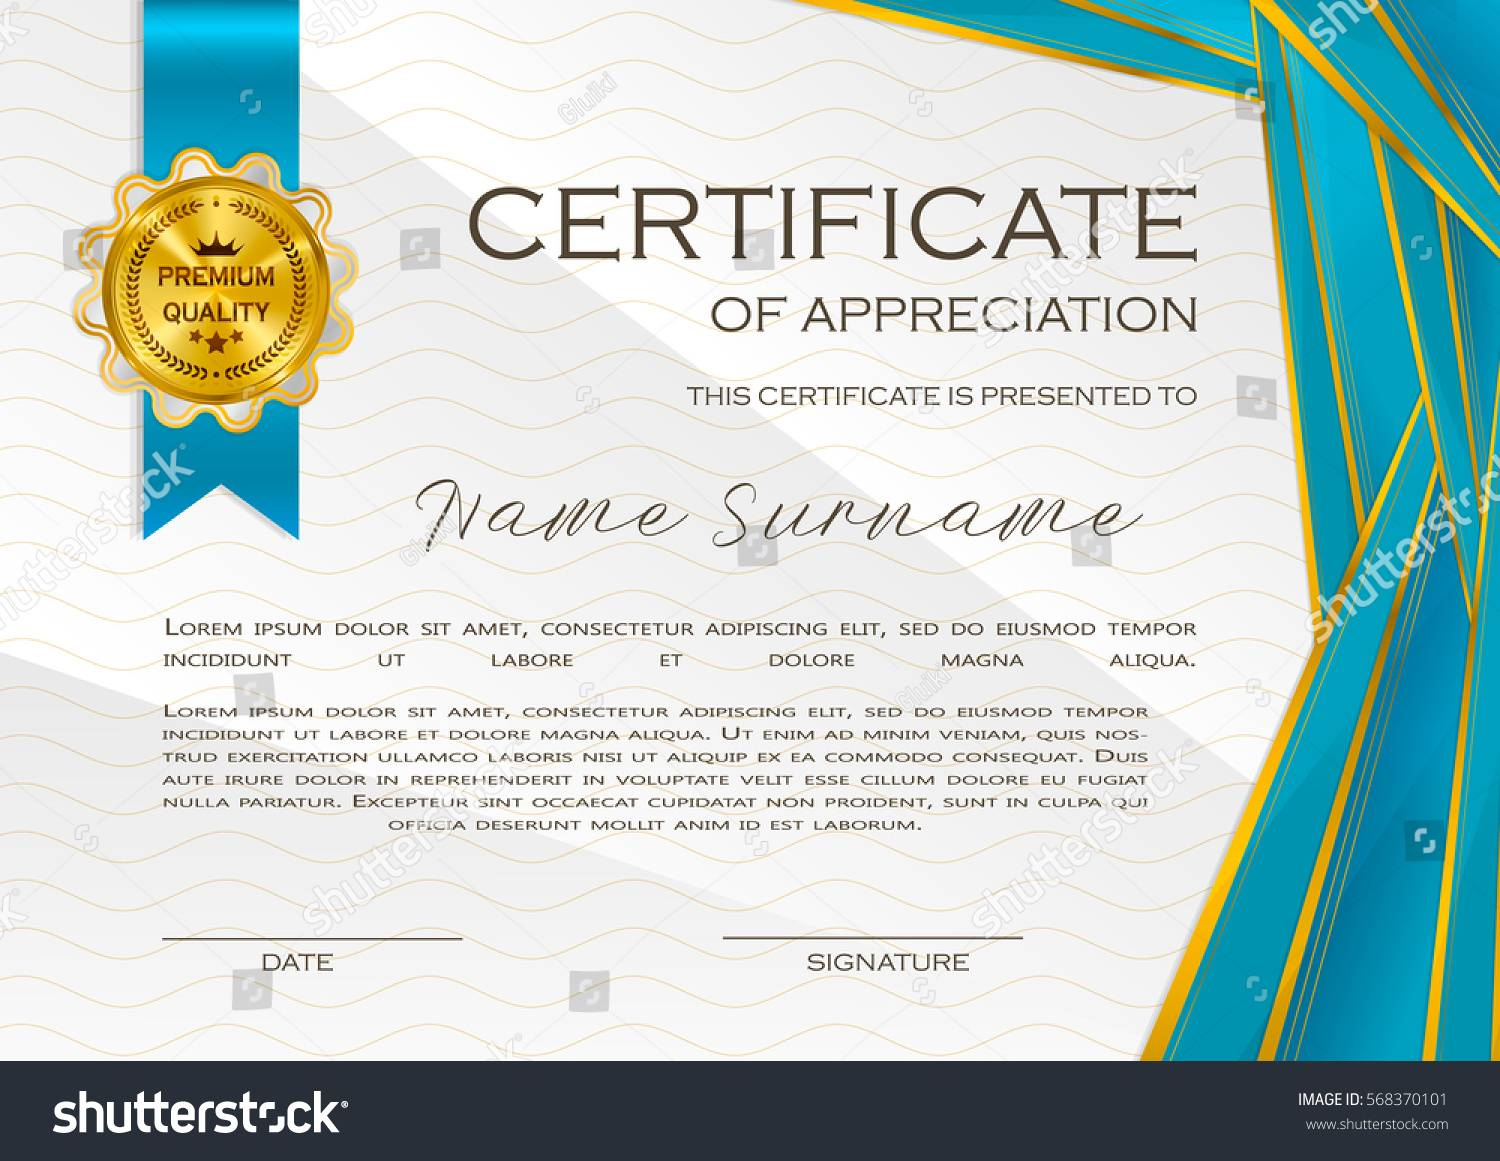 Online Template For Certificate Of Appreciation